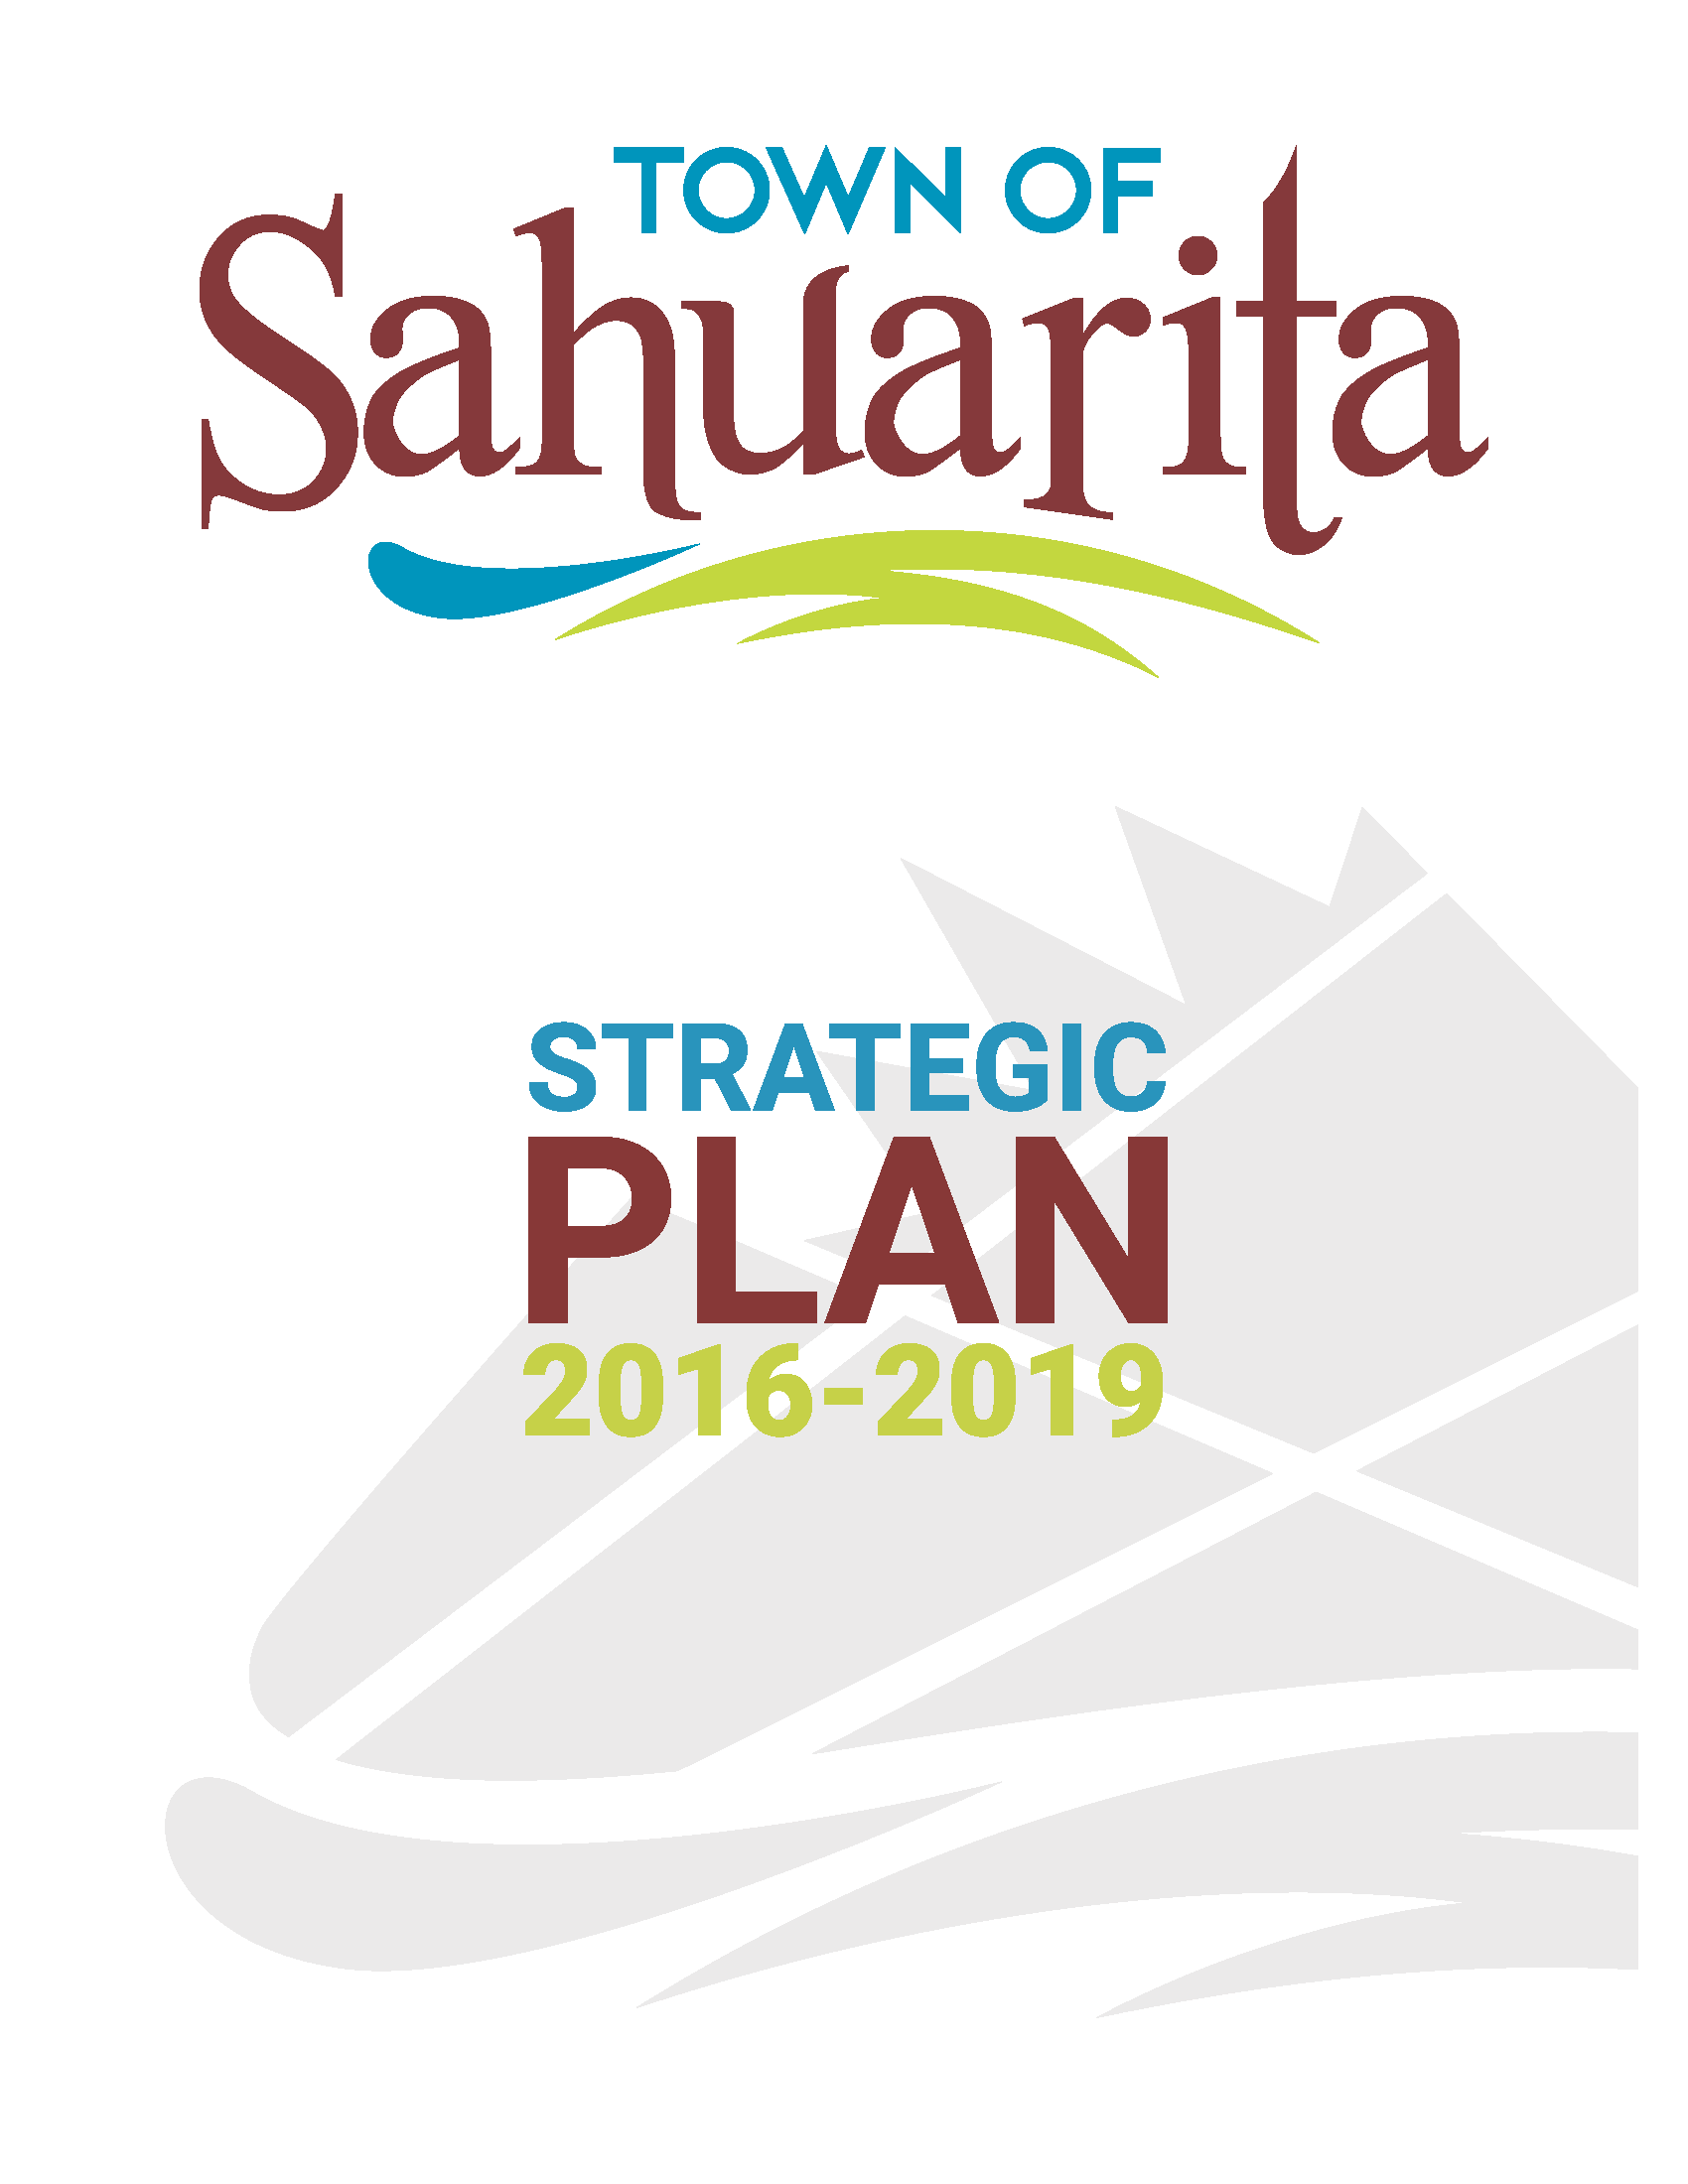 Town of Sahuartia Strategic Plan 2016 to 2019